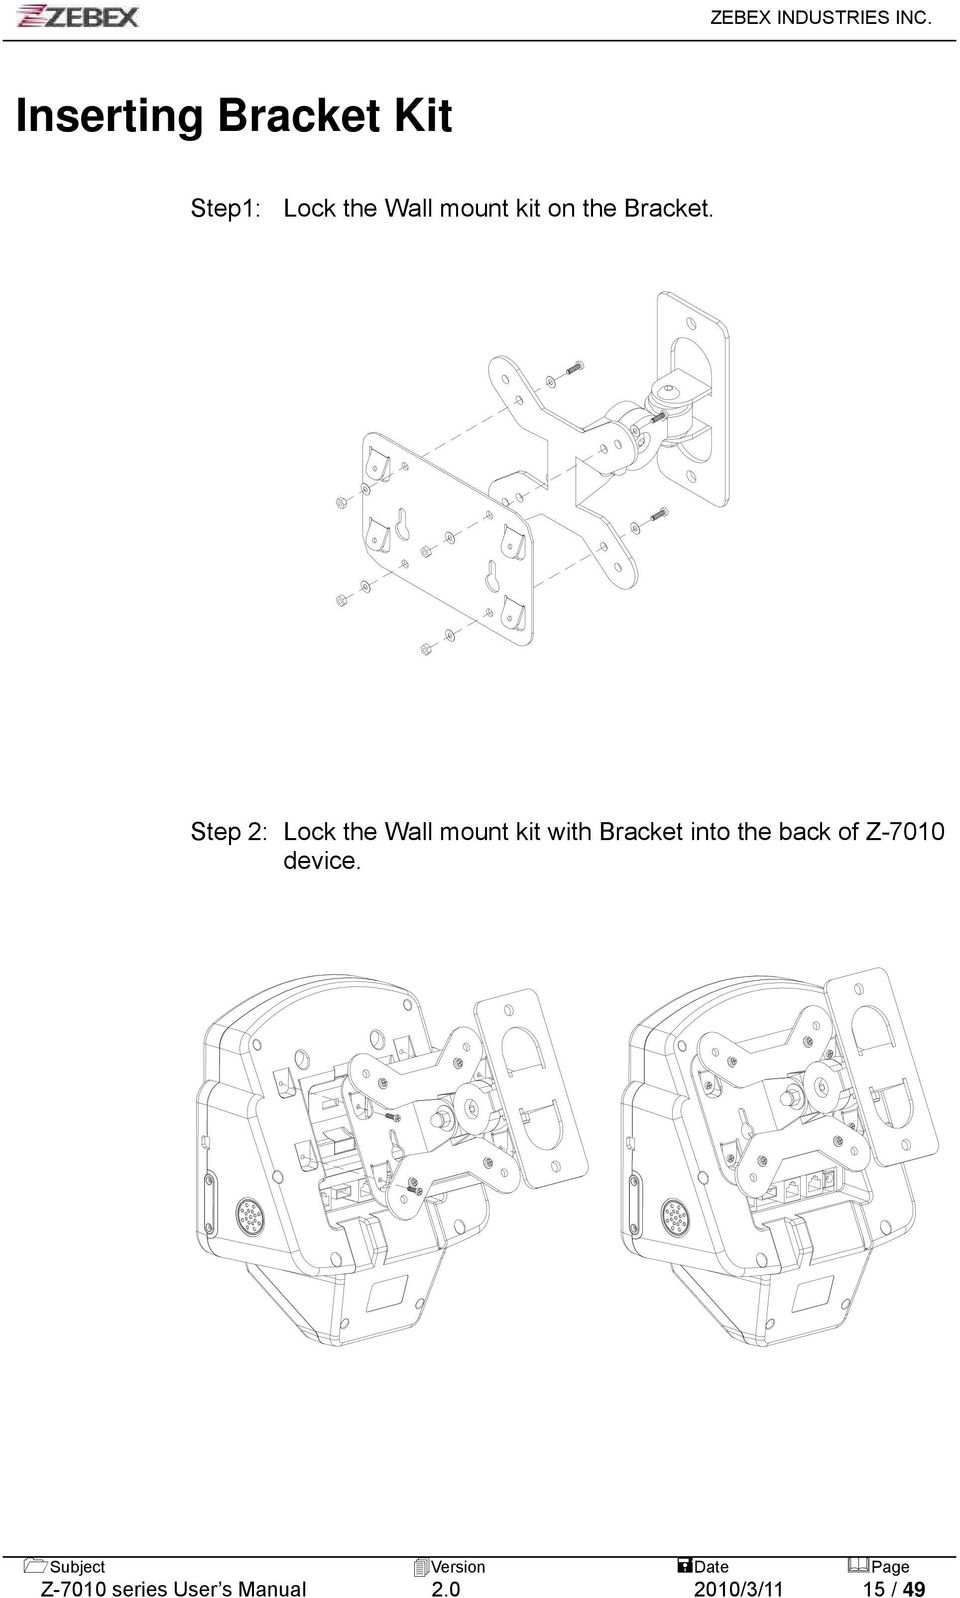 Step 2: Lock the Wall mount kit with Bracket